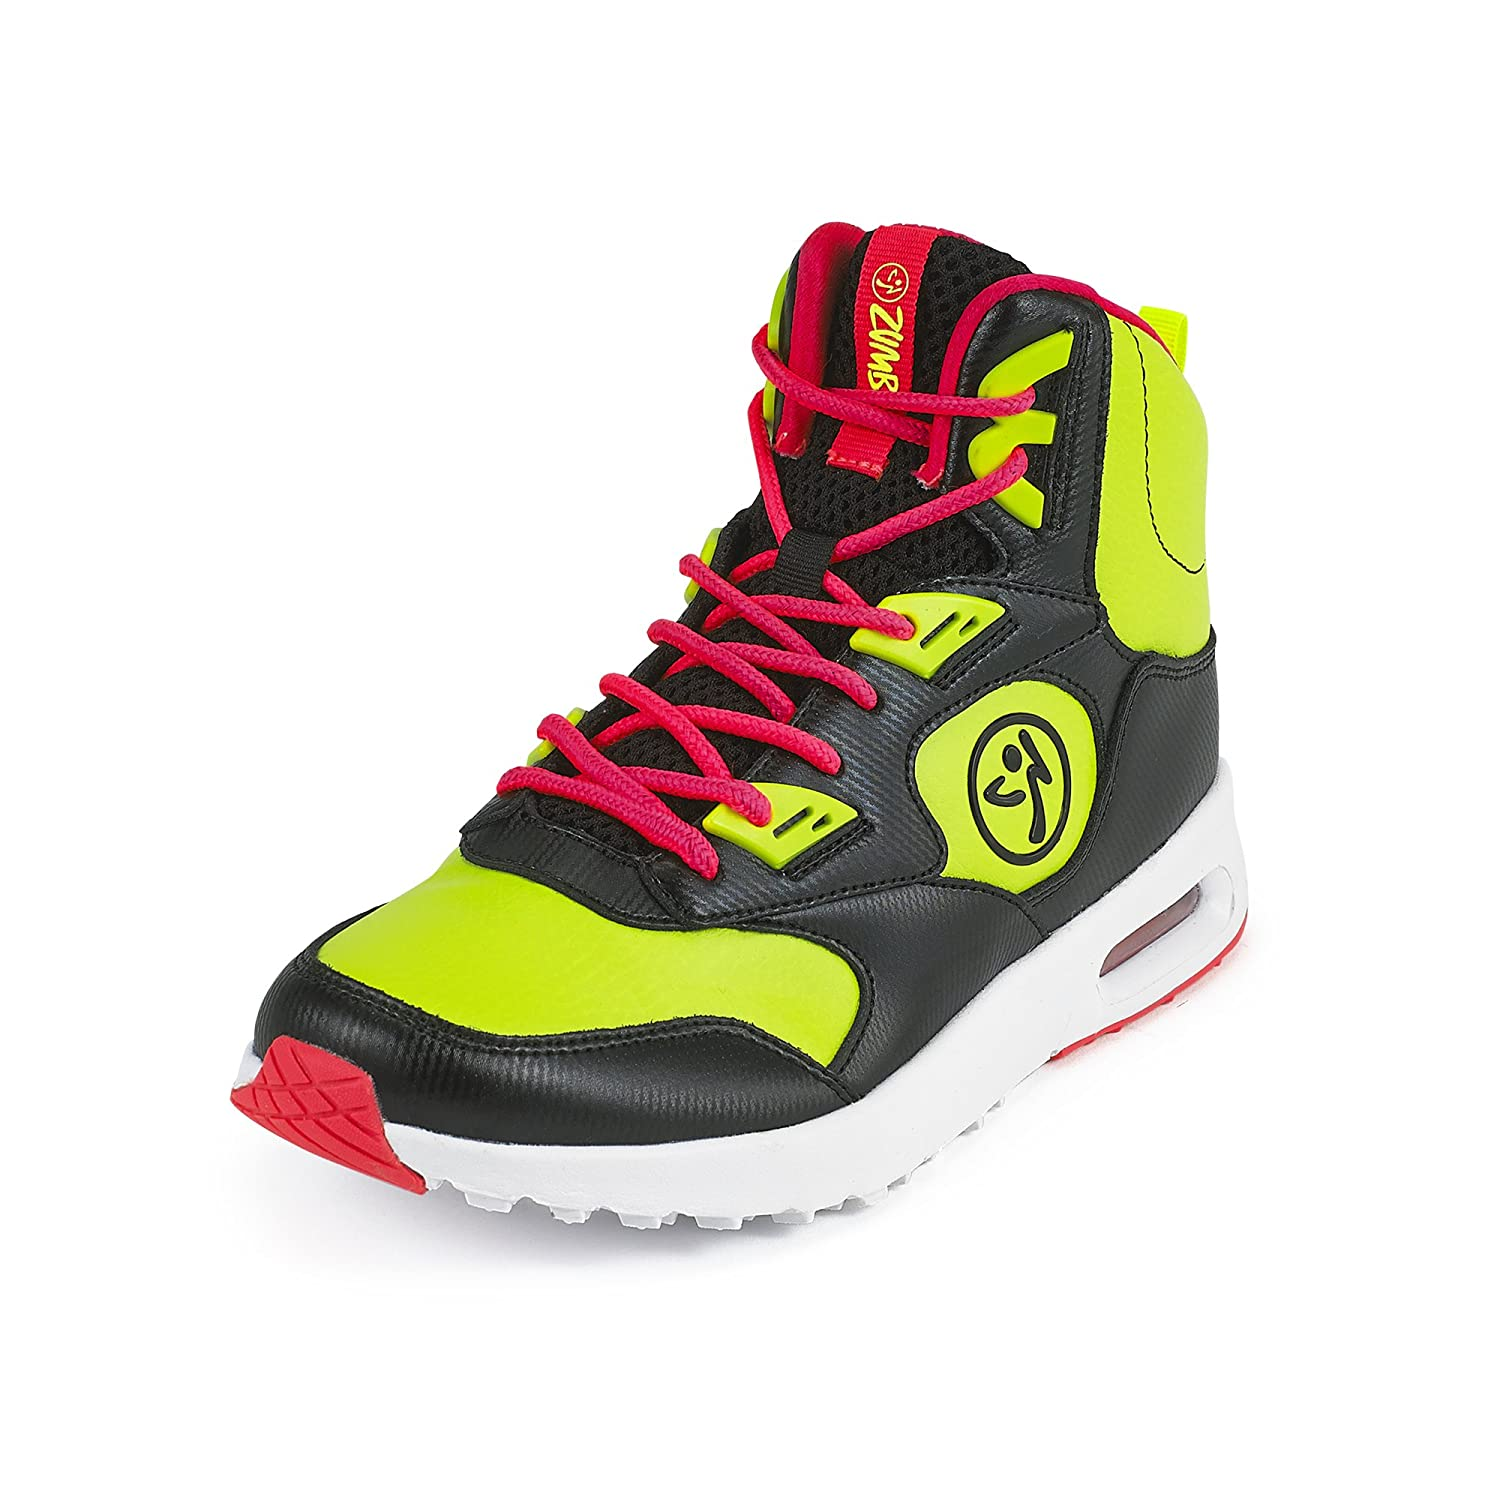 Zumba Women's Air Classic Athletic Dance Workout Shoes with Max Impact Protection Sneaker